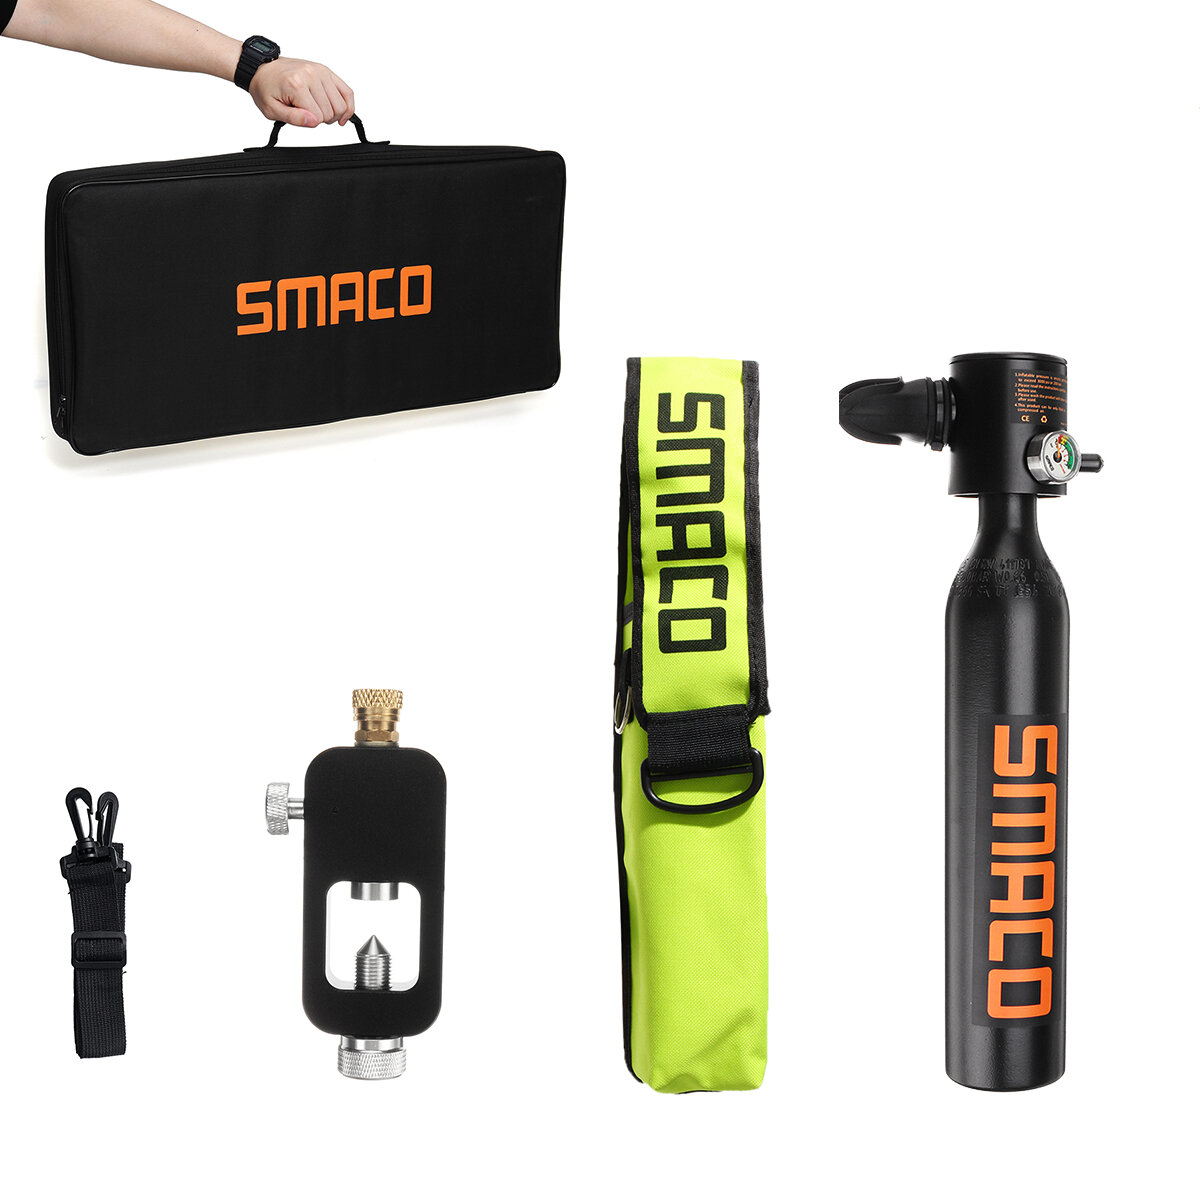 SMACO 0.5L Oxygen Cylinder Mini Scuba Diving Air Tank Pump Respirator Adapter Diving Kit